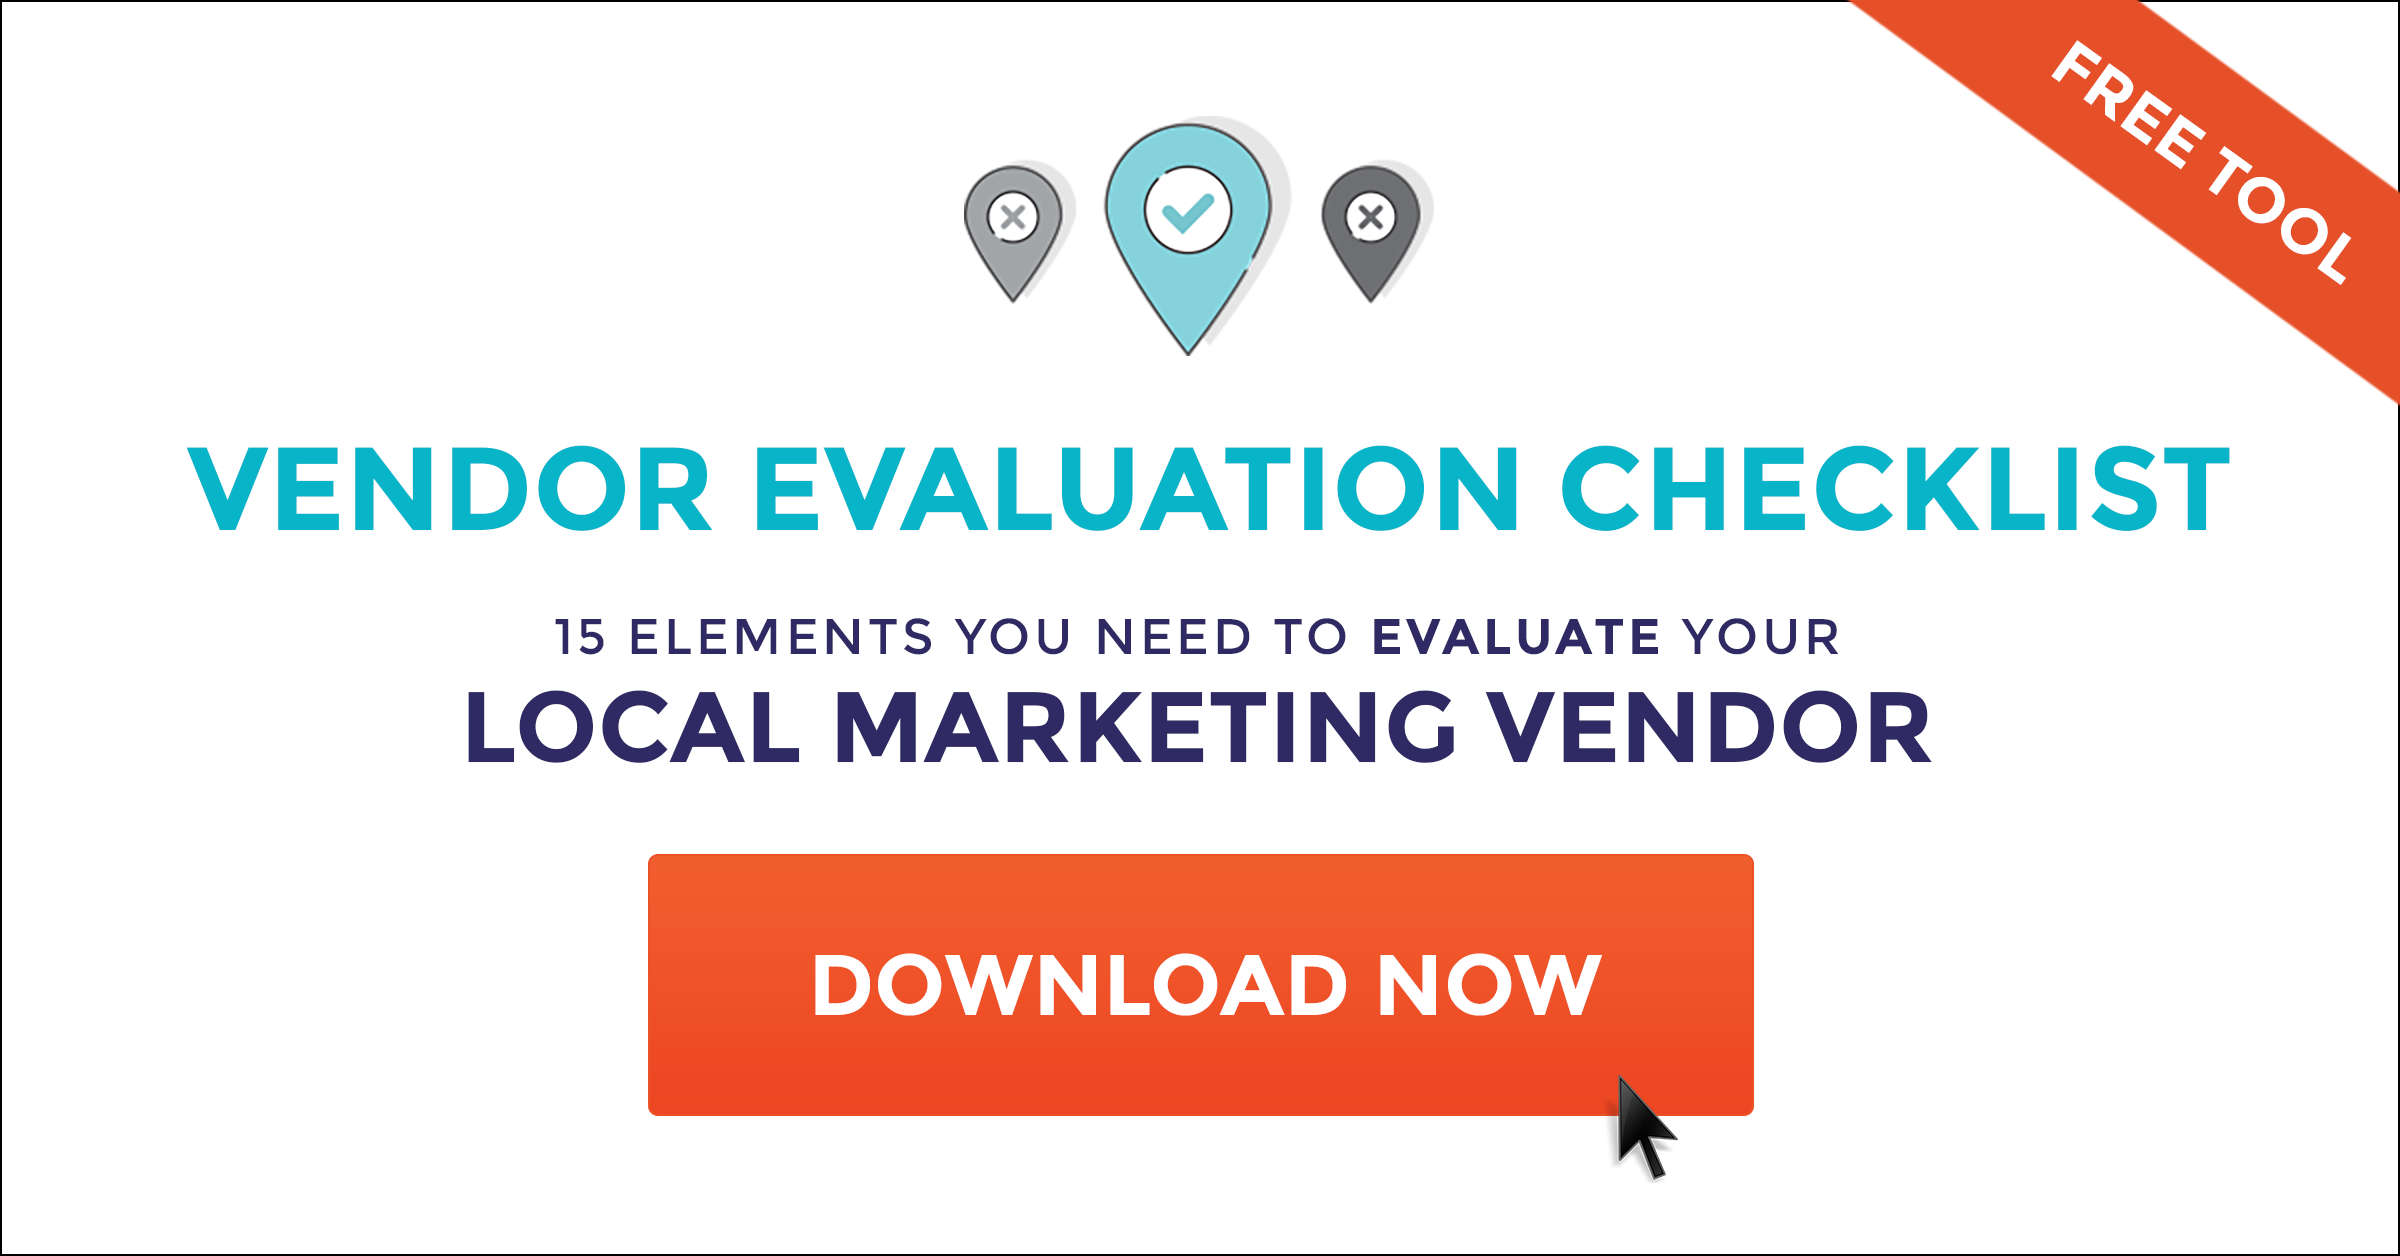 Vendor evaluation checklist – Vendor Evaluation